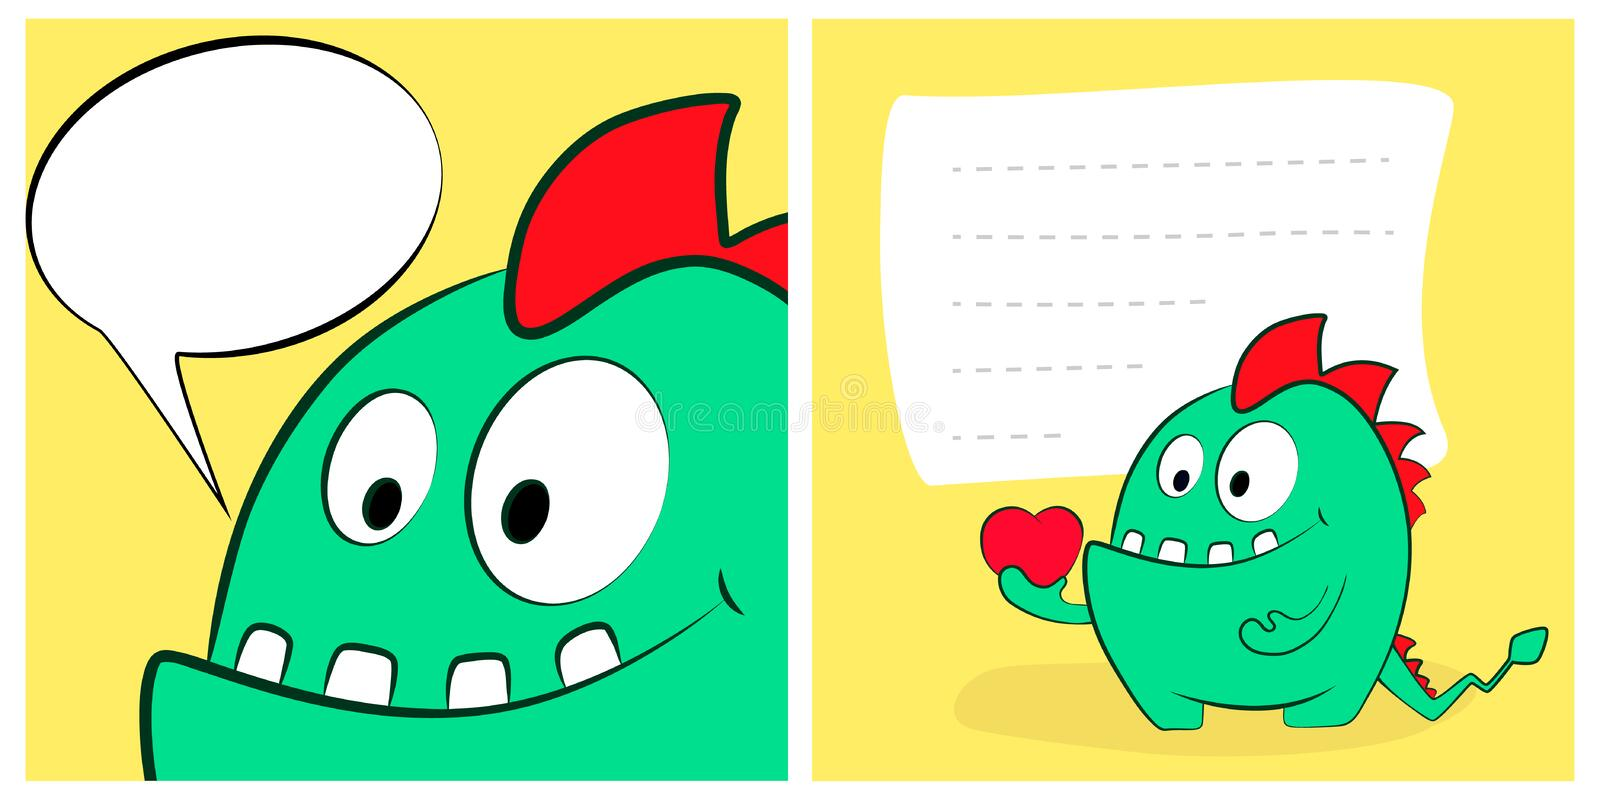 Happy valentines day cards with cute cartoon monster dragon, heart, speech bubble. vector illustration